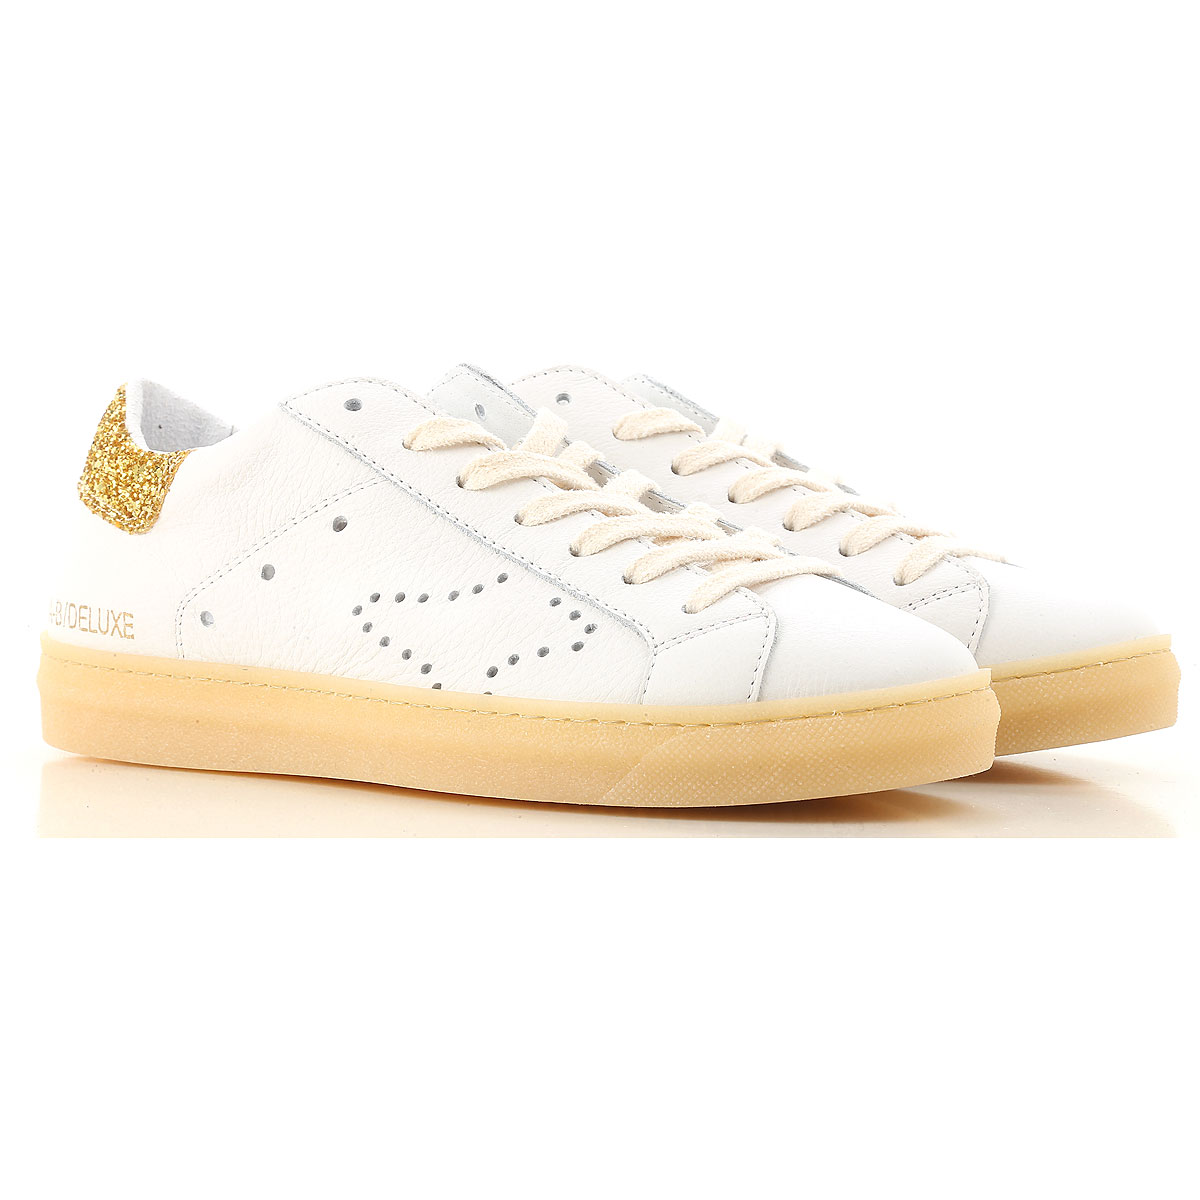 Image of Ama Brand Sneakers for Women On Sale, White, Leather, 2017, EUR 37 - UK 4 - USA 6.5 EUR 38 - UK 5 - USA 7.5 EUR 39 - UK 6 - USA 8.5